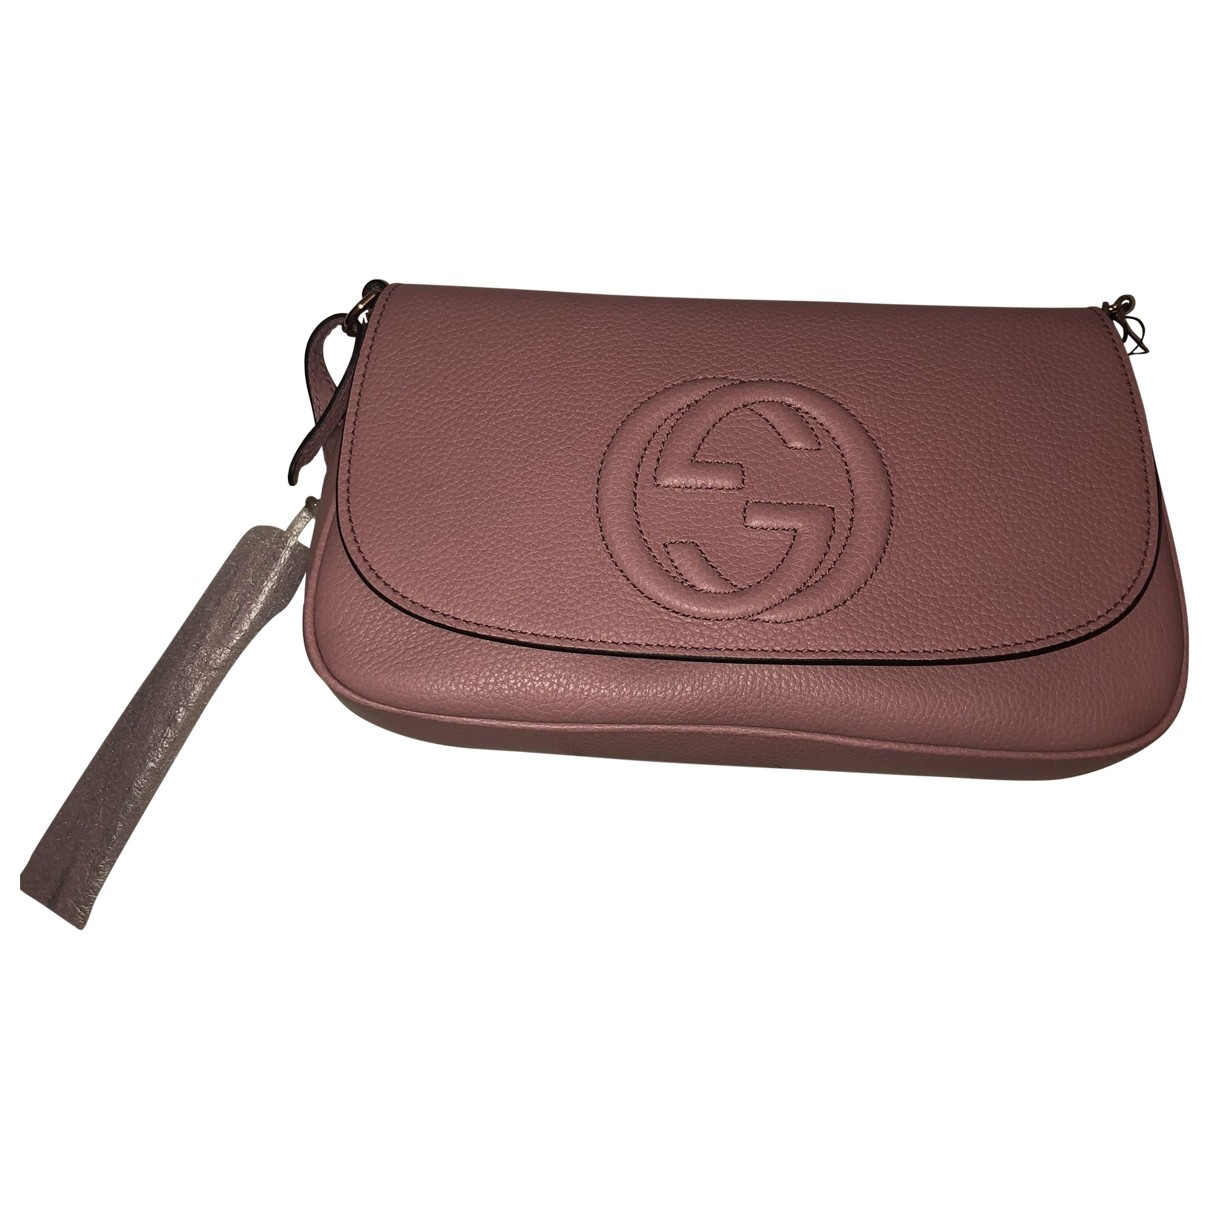 Gucci Soho Pink Leather Clutch bag for Women \N